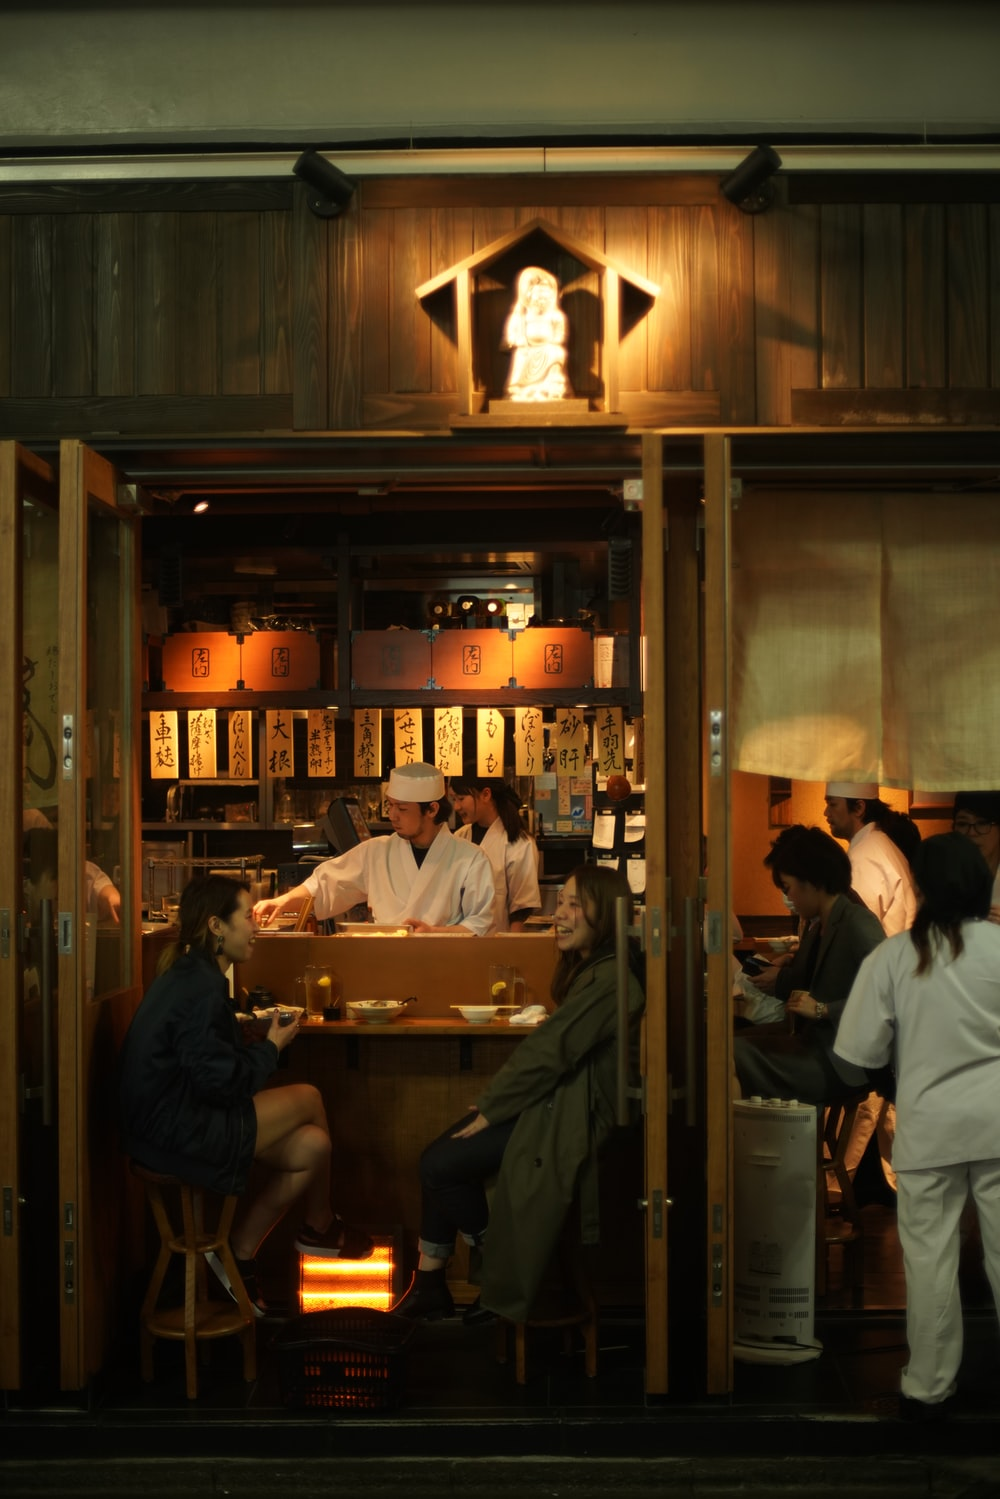 people sitting at the table inside restaurant